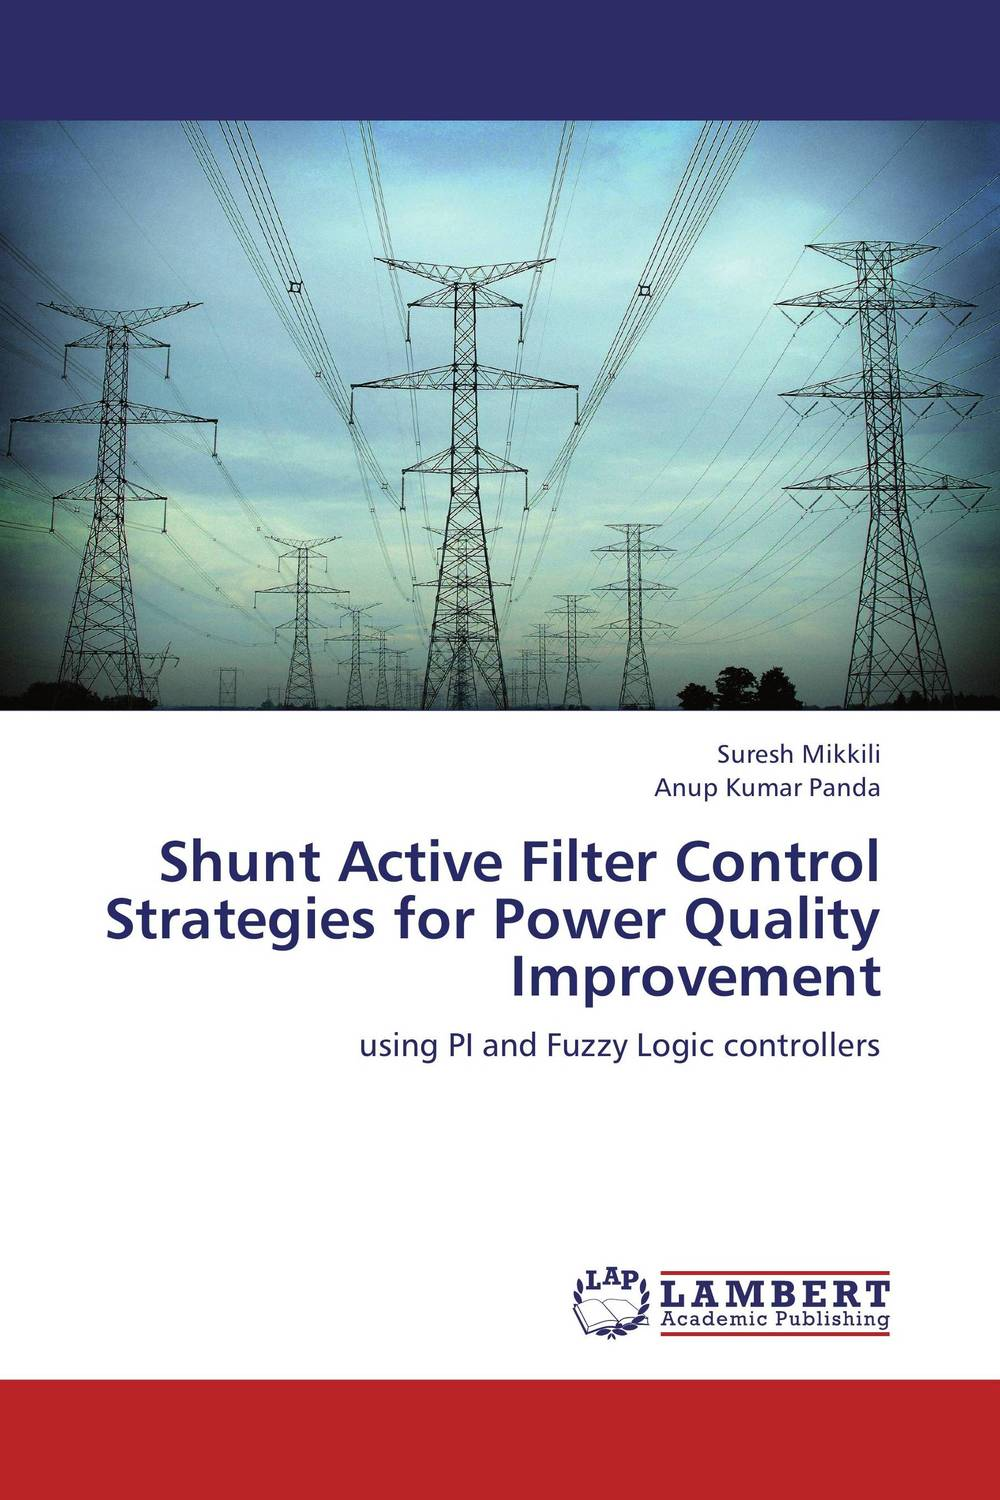 Shunt Active Filter Control Strategies for Power Quality Improvement impact of wind energy on reactive power and voltage control